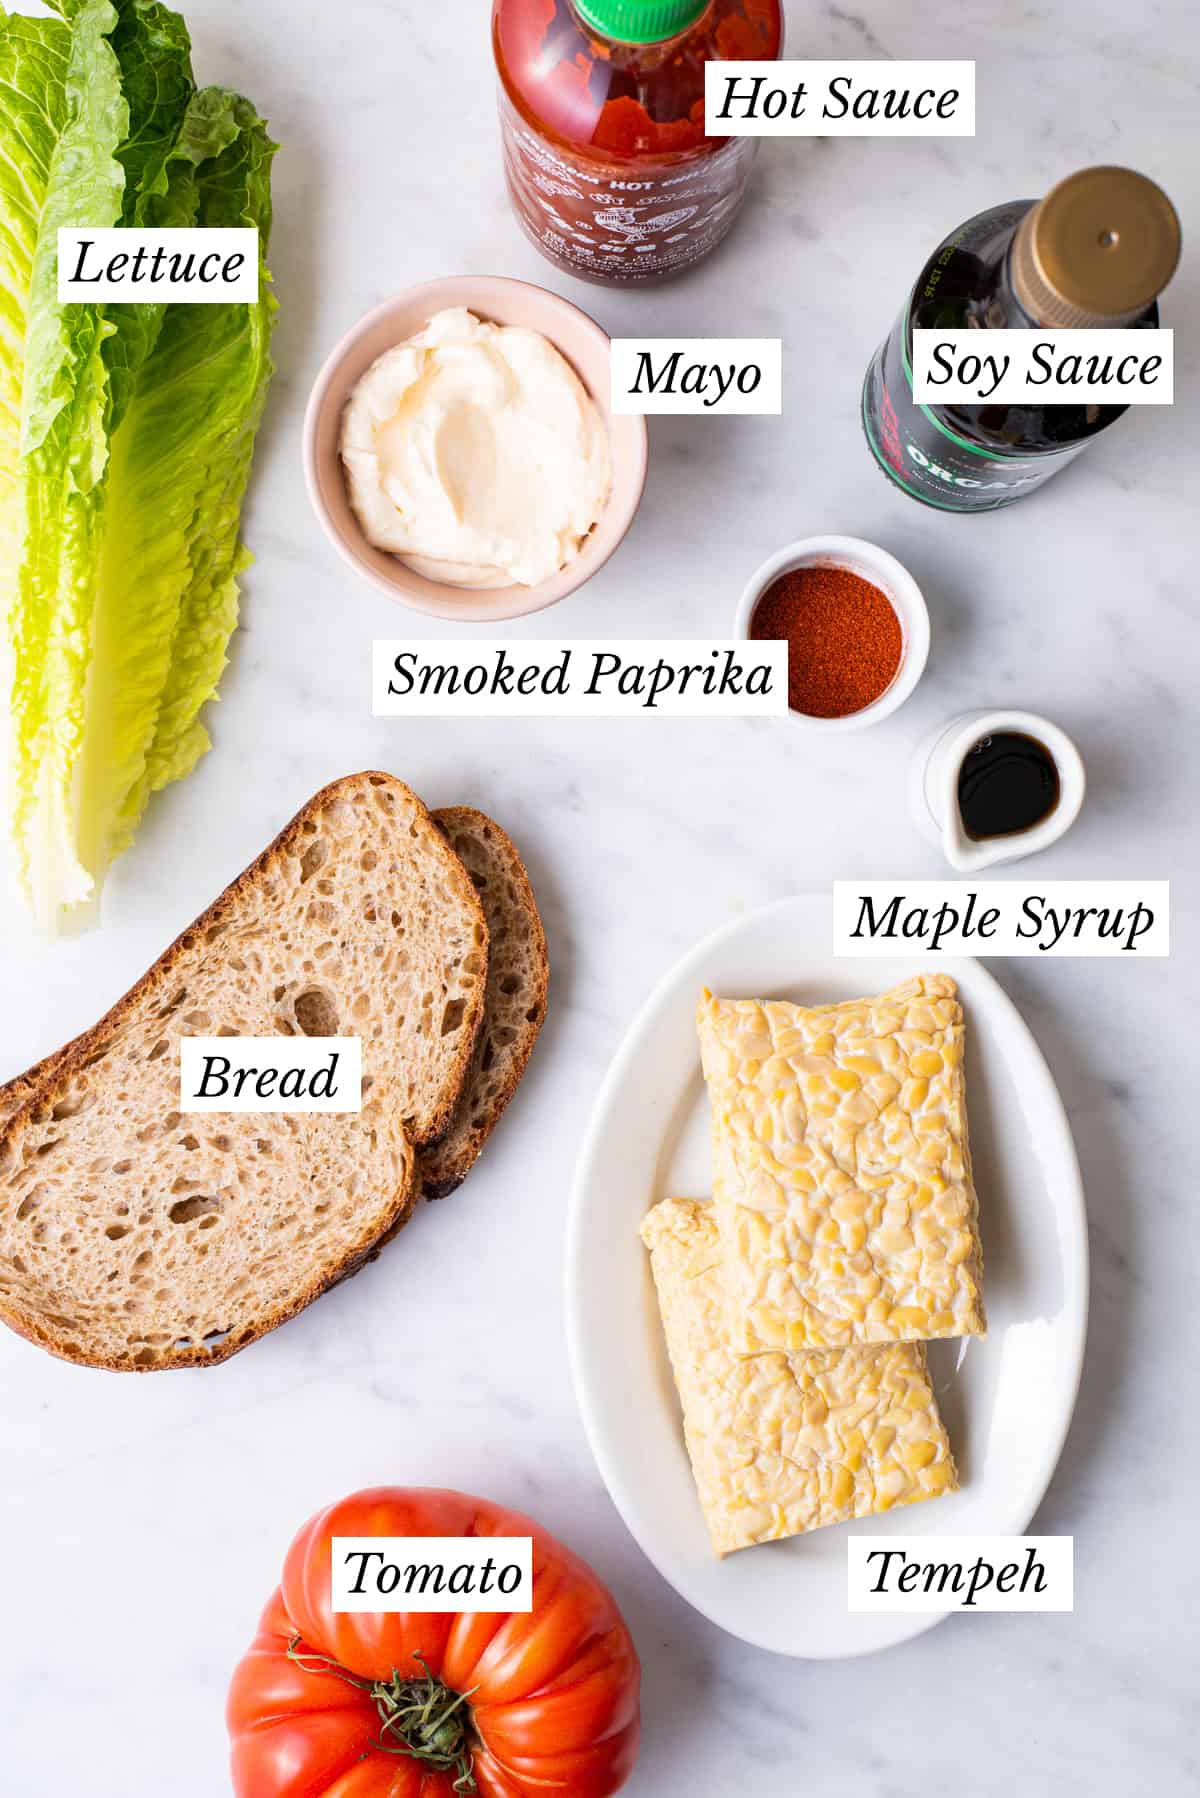 Ingredients gathered to make vegan BLT sandwiches: tempeh 'bacon', sourdough bread, lettuce, sliced tomatoes, and spicy mayo.